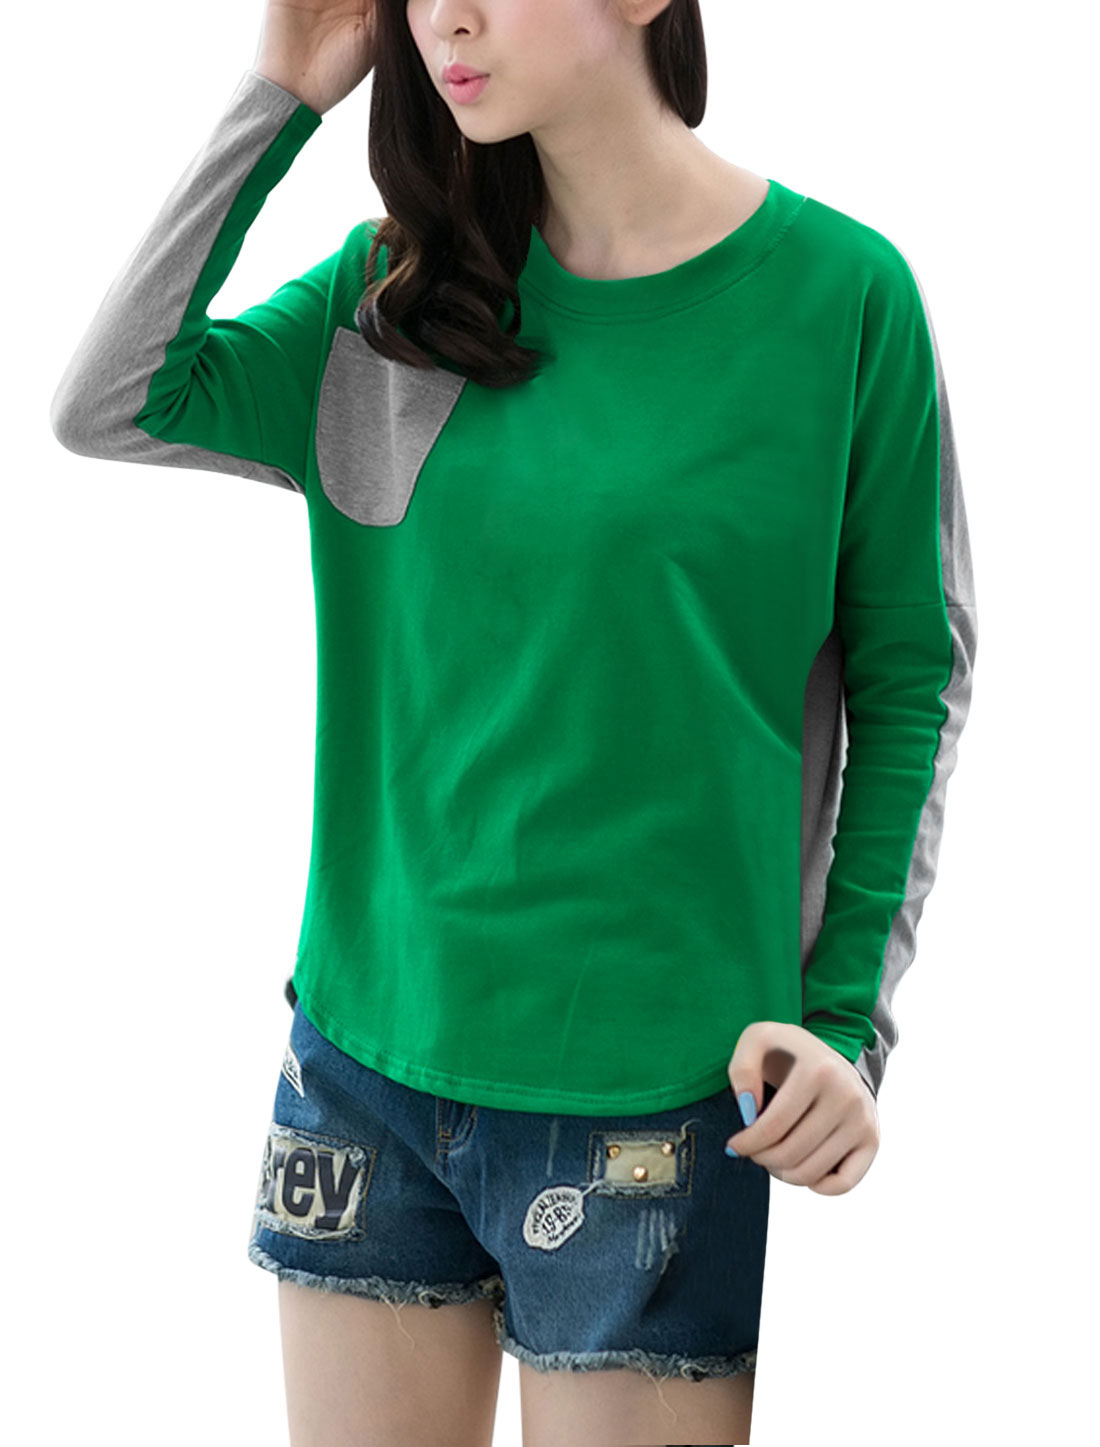 Lady Crew Neck Long Batwing Sleeve Color Blocking Casual T-Shirt Dark Green Gray S